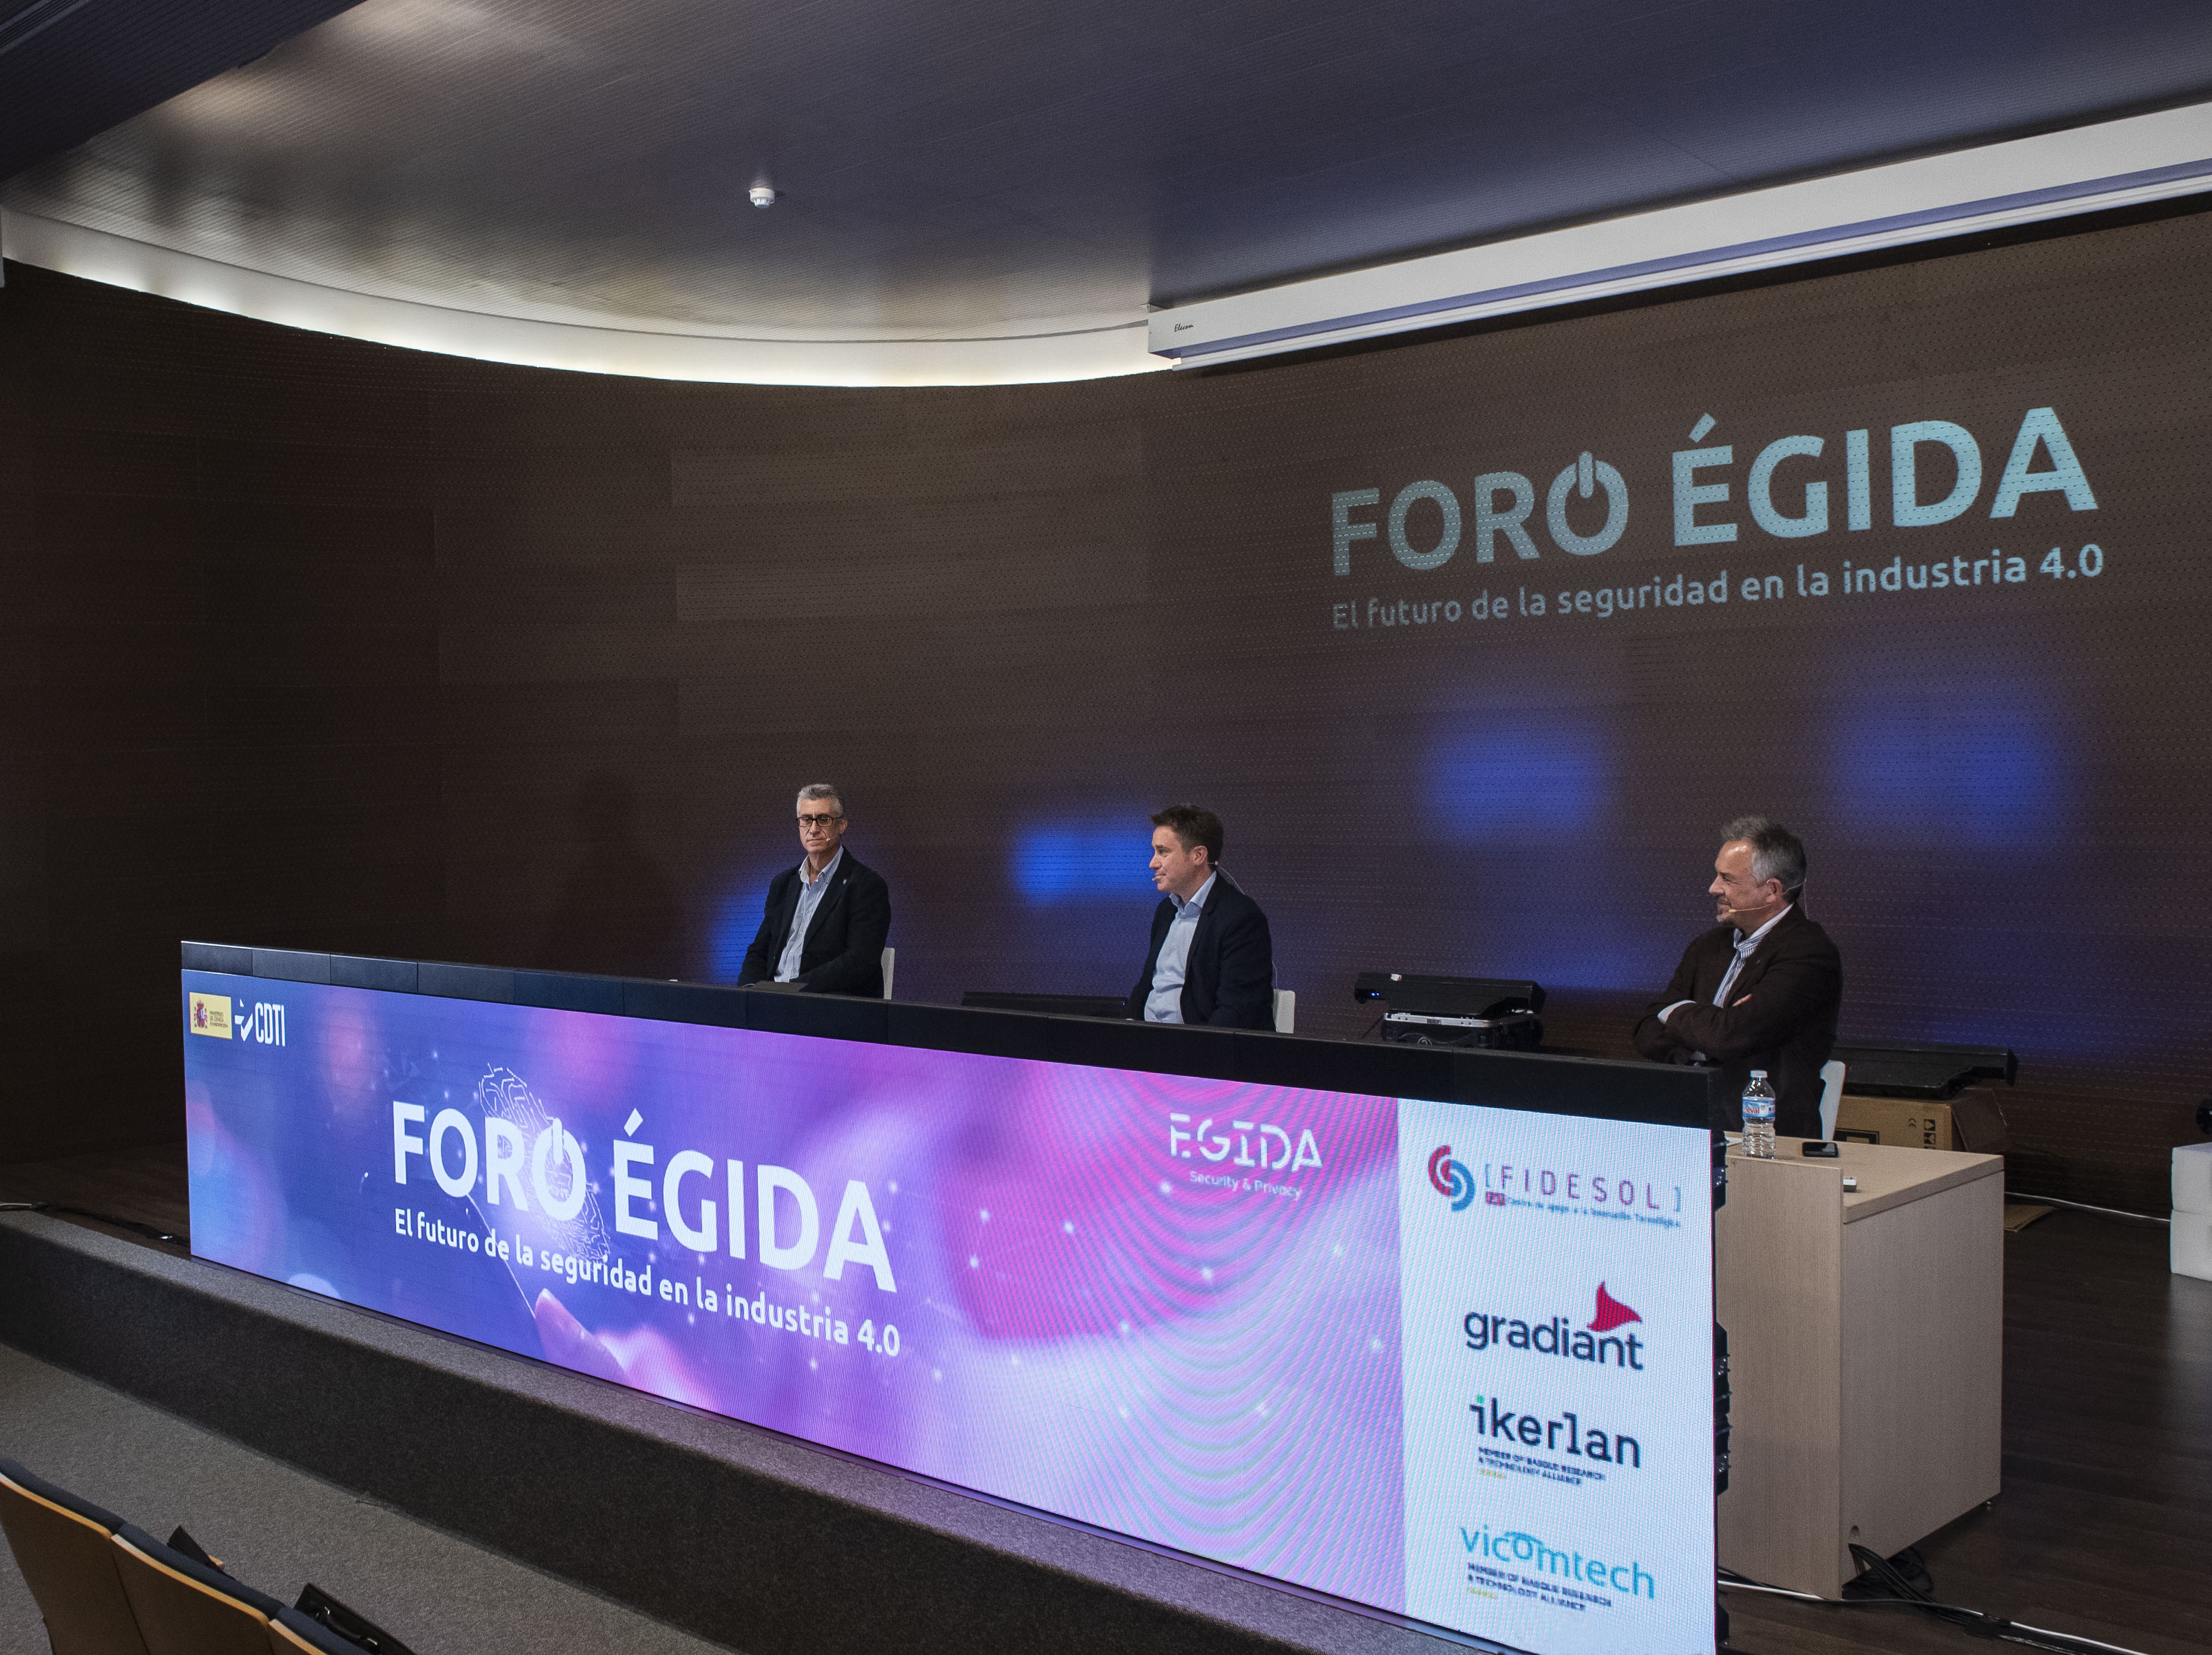 Experts from VICOMTECH and IKERLAN analyse the future of security in industry 4.0 at the 1st ÉGIDA Forum